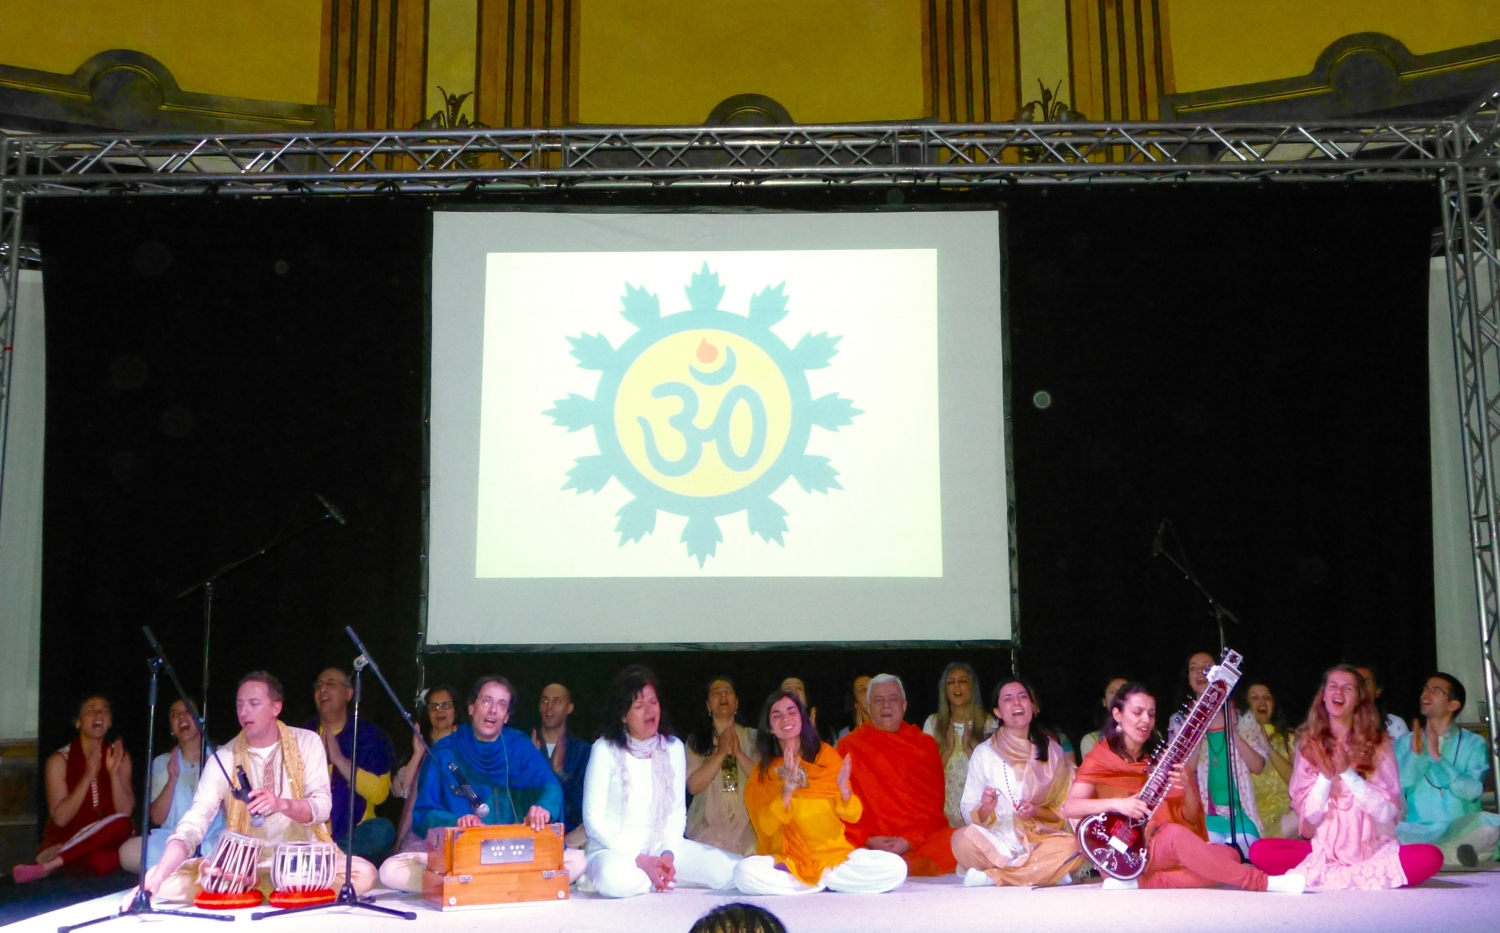 Omkára - Choir Orchestra of Mantra of the Portuguese Yoga Confederation